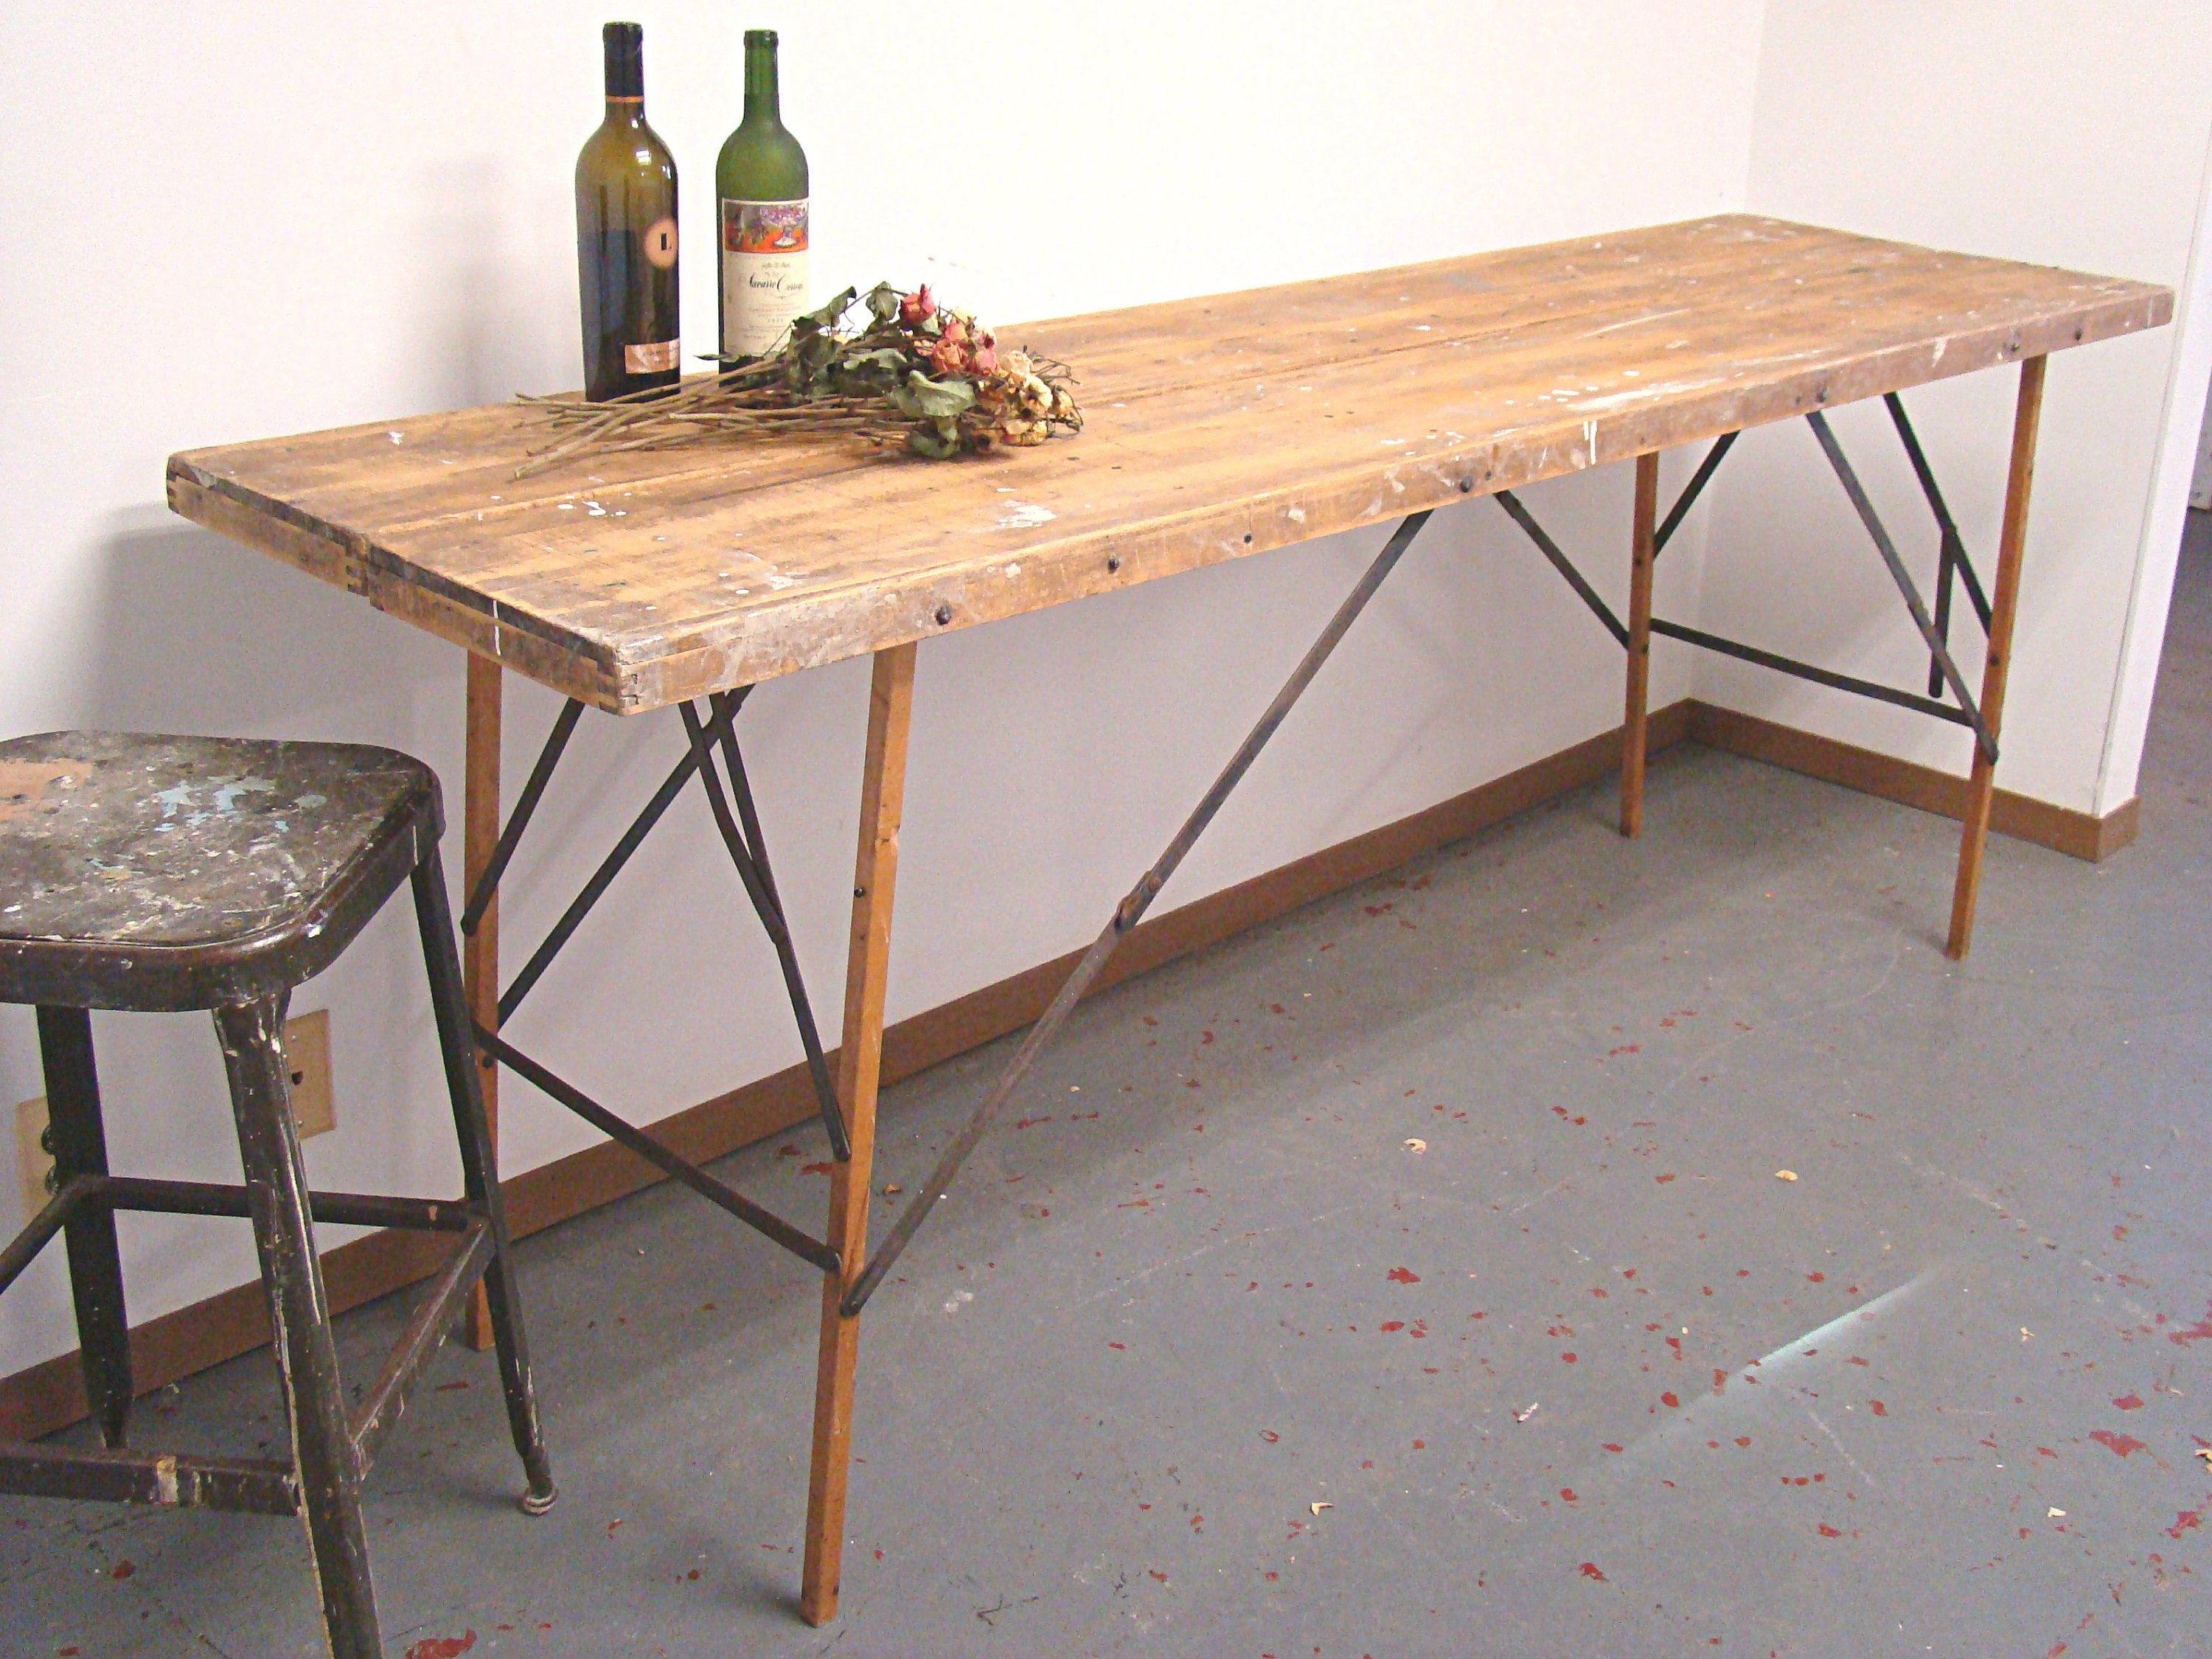 Vintage Wallpaper Table Folding Table Wood Work Surface 3000x2250